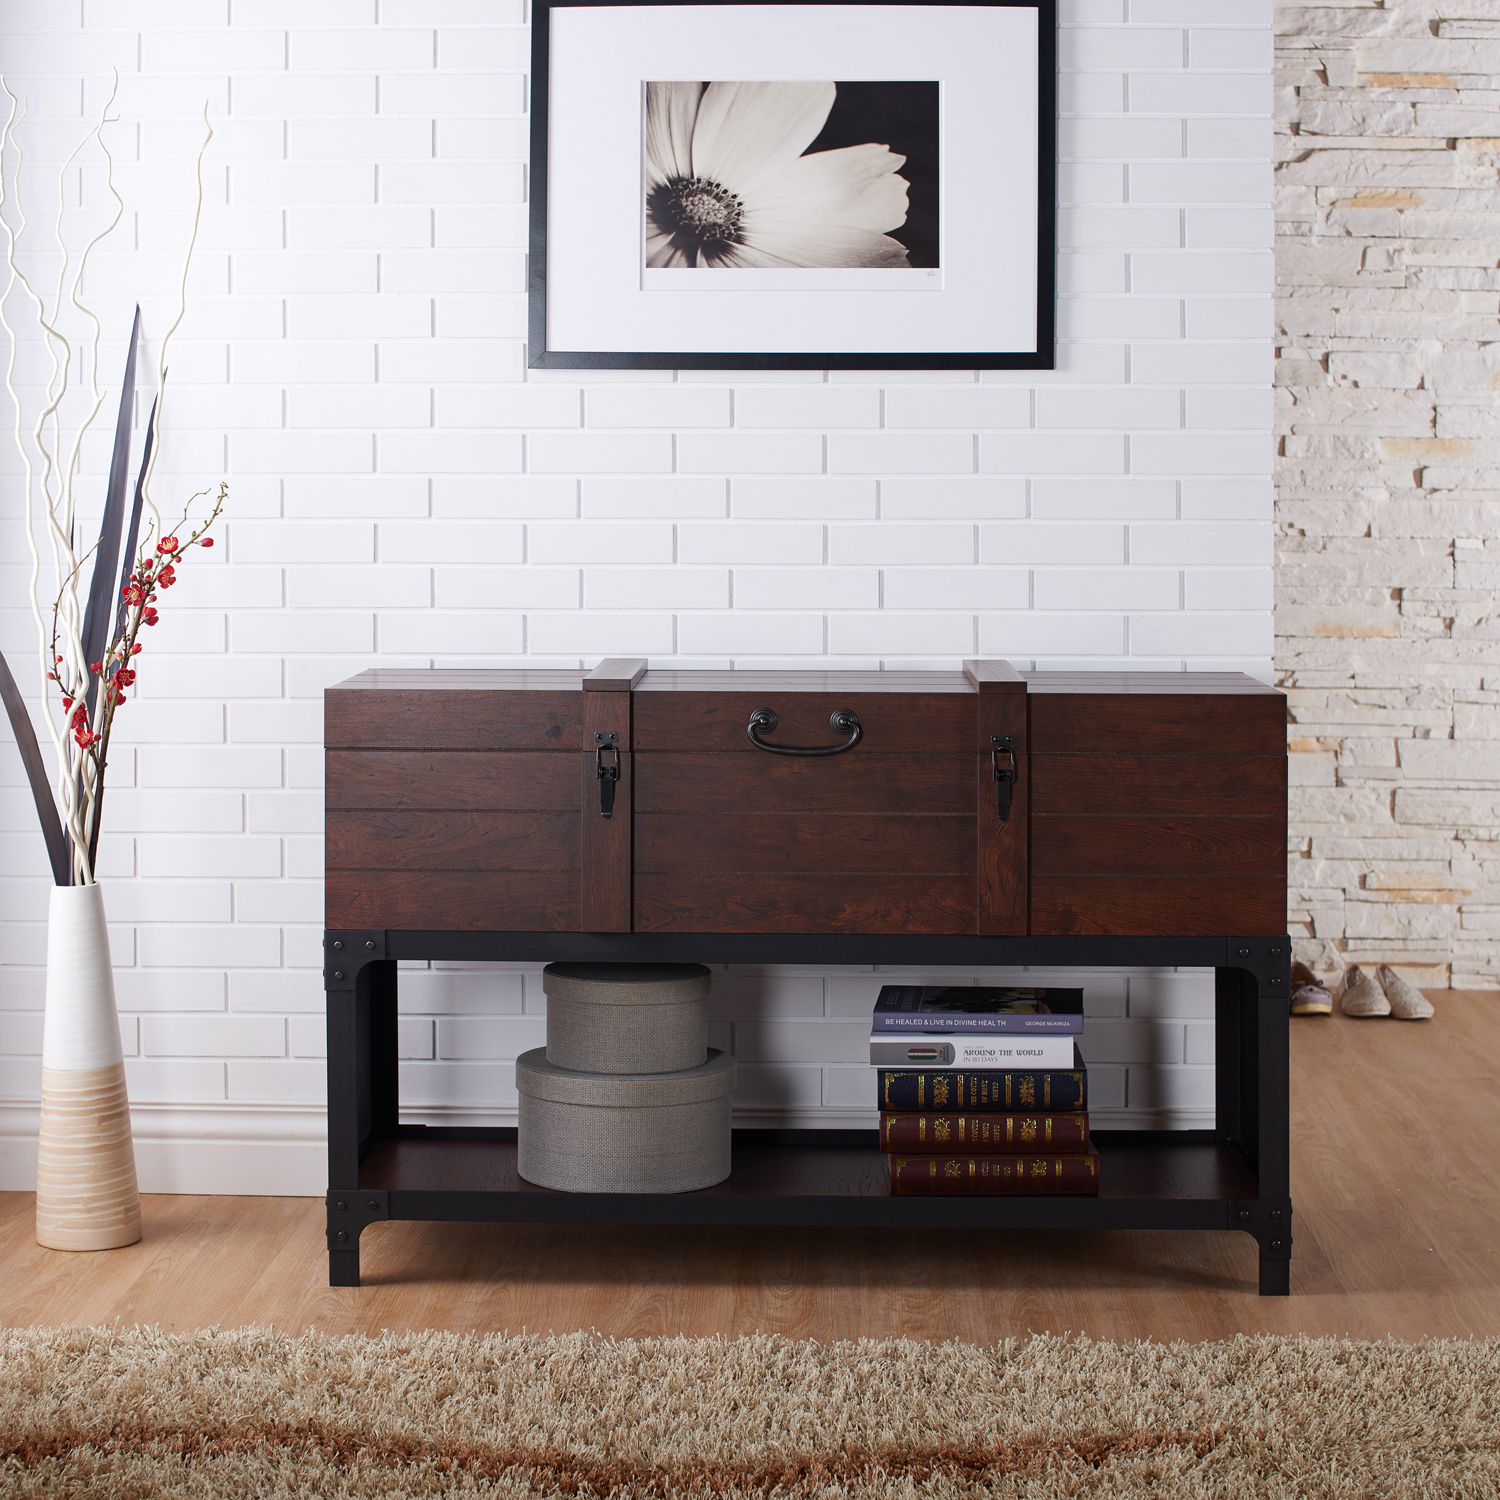 Furniture Of America Smithsen Trunk Style Console Table, Vintage Walnut